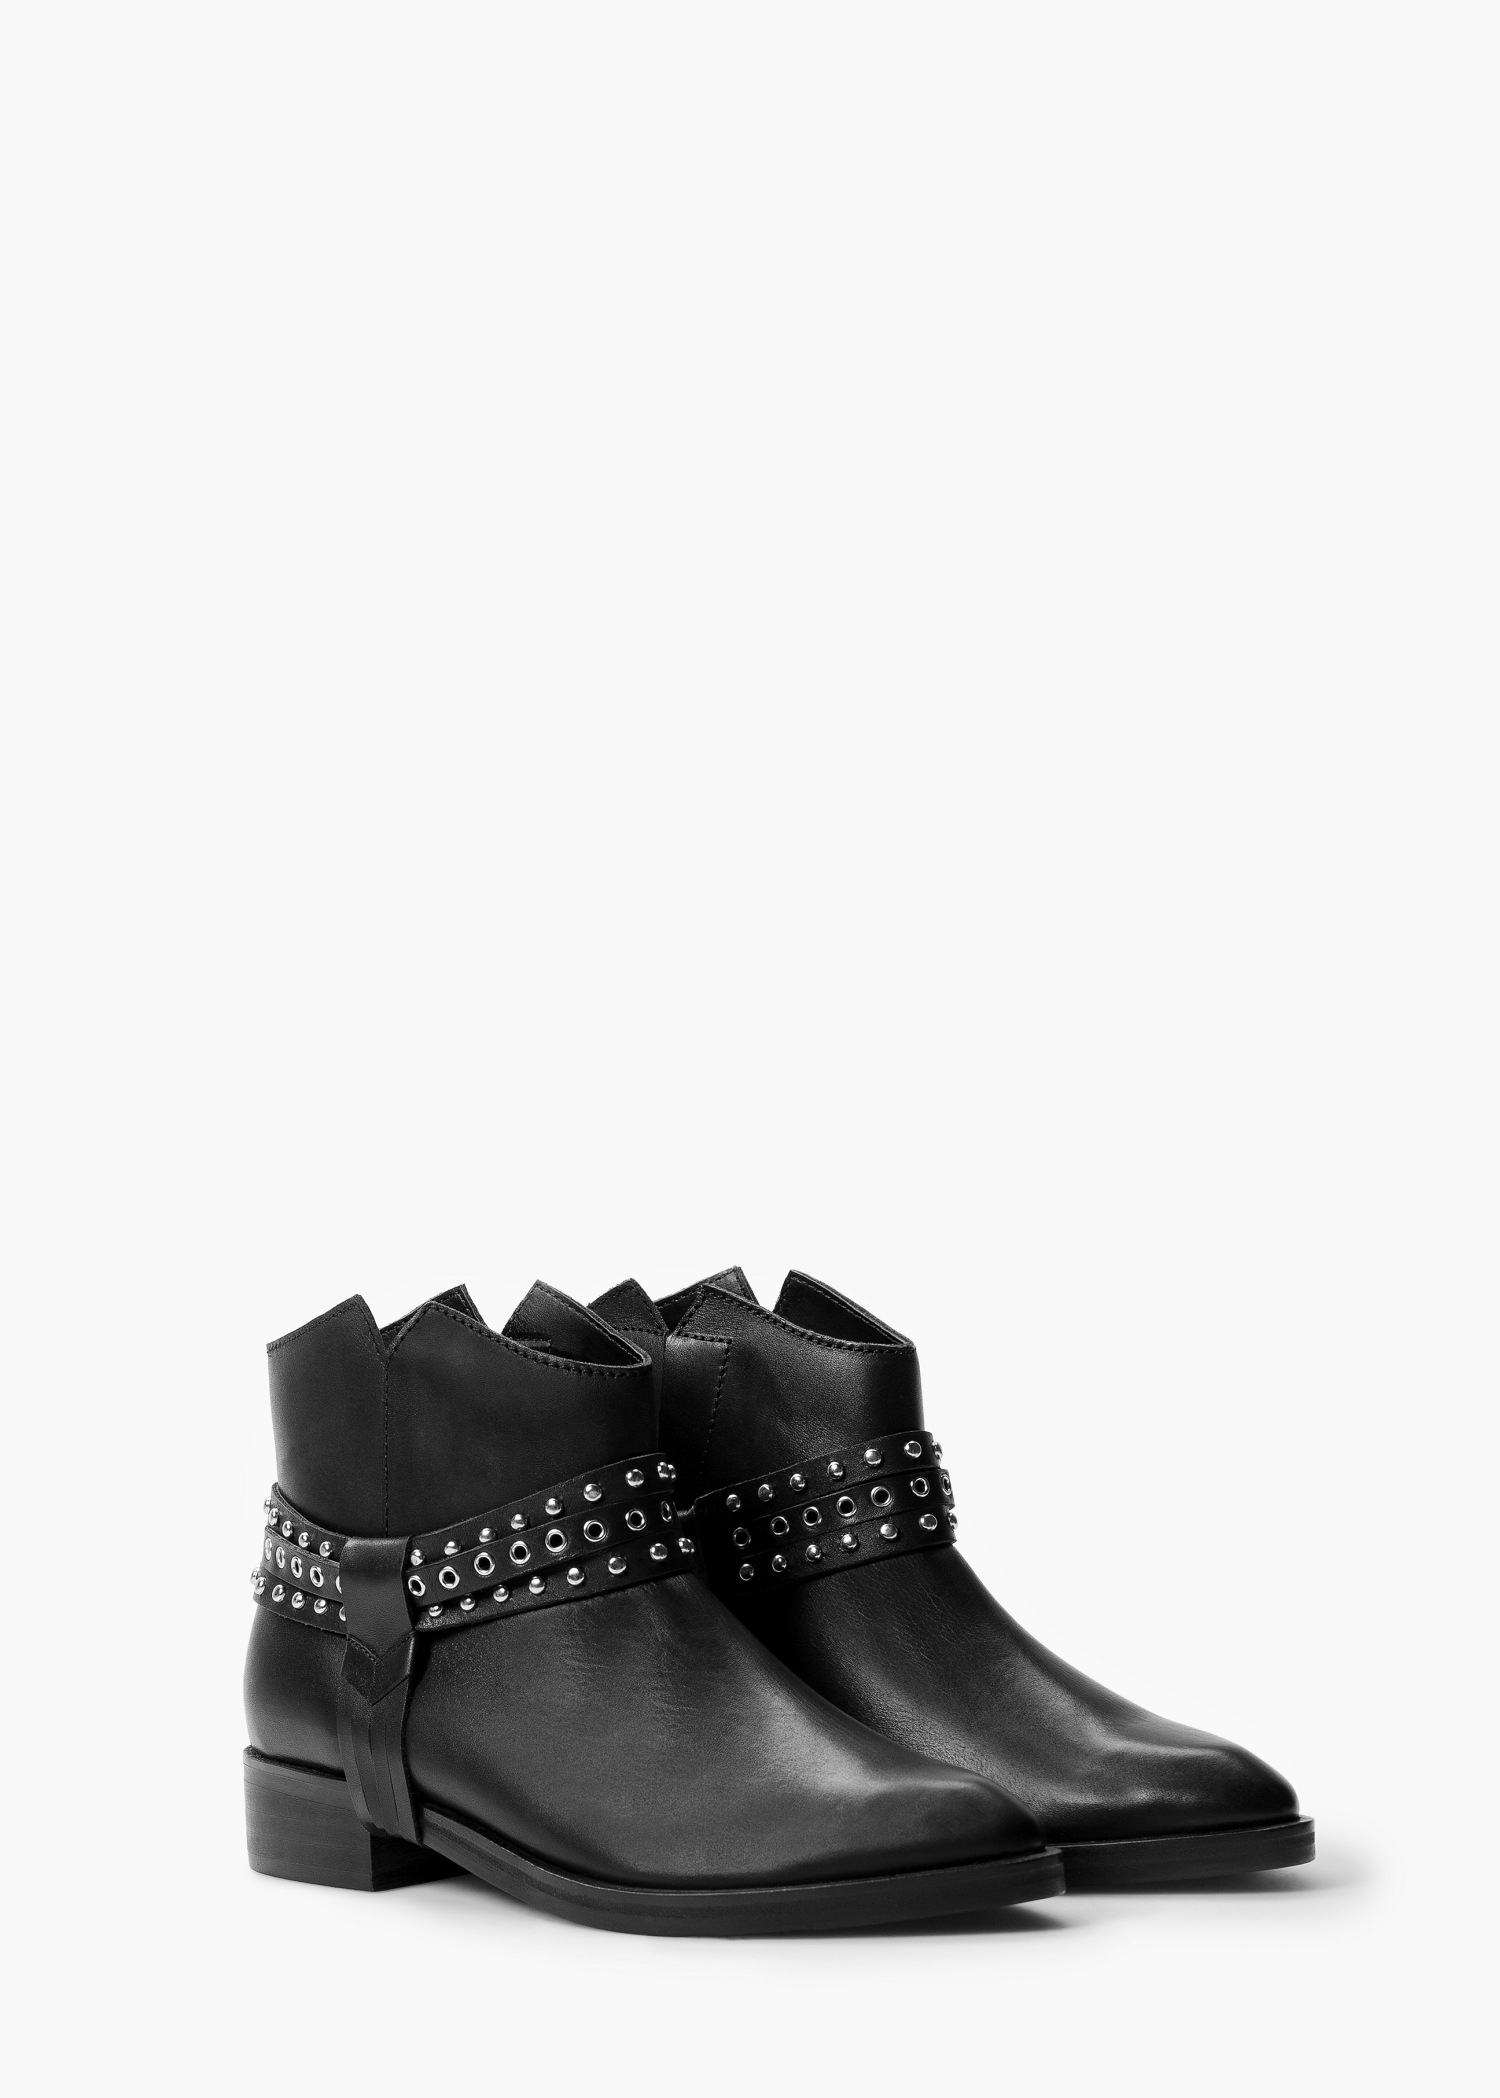 Mango Studded Leather Ankle Boots In Black | Lyst